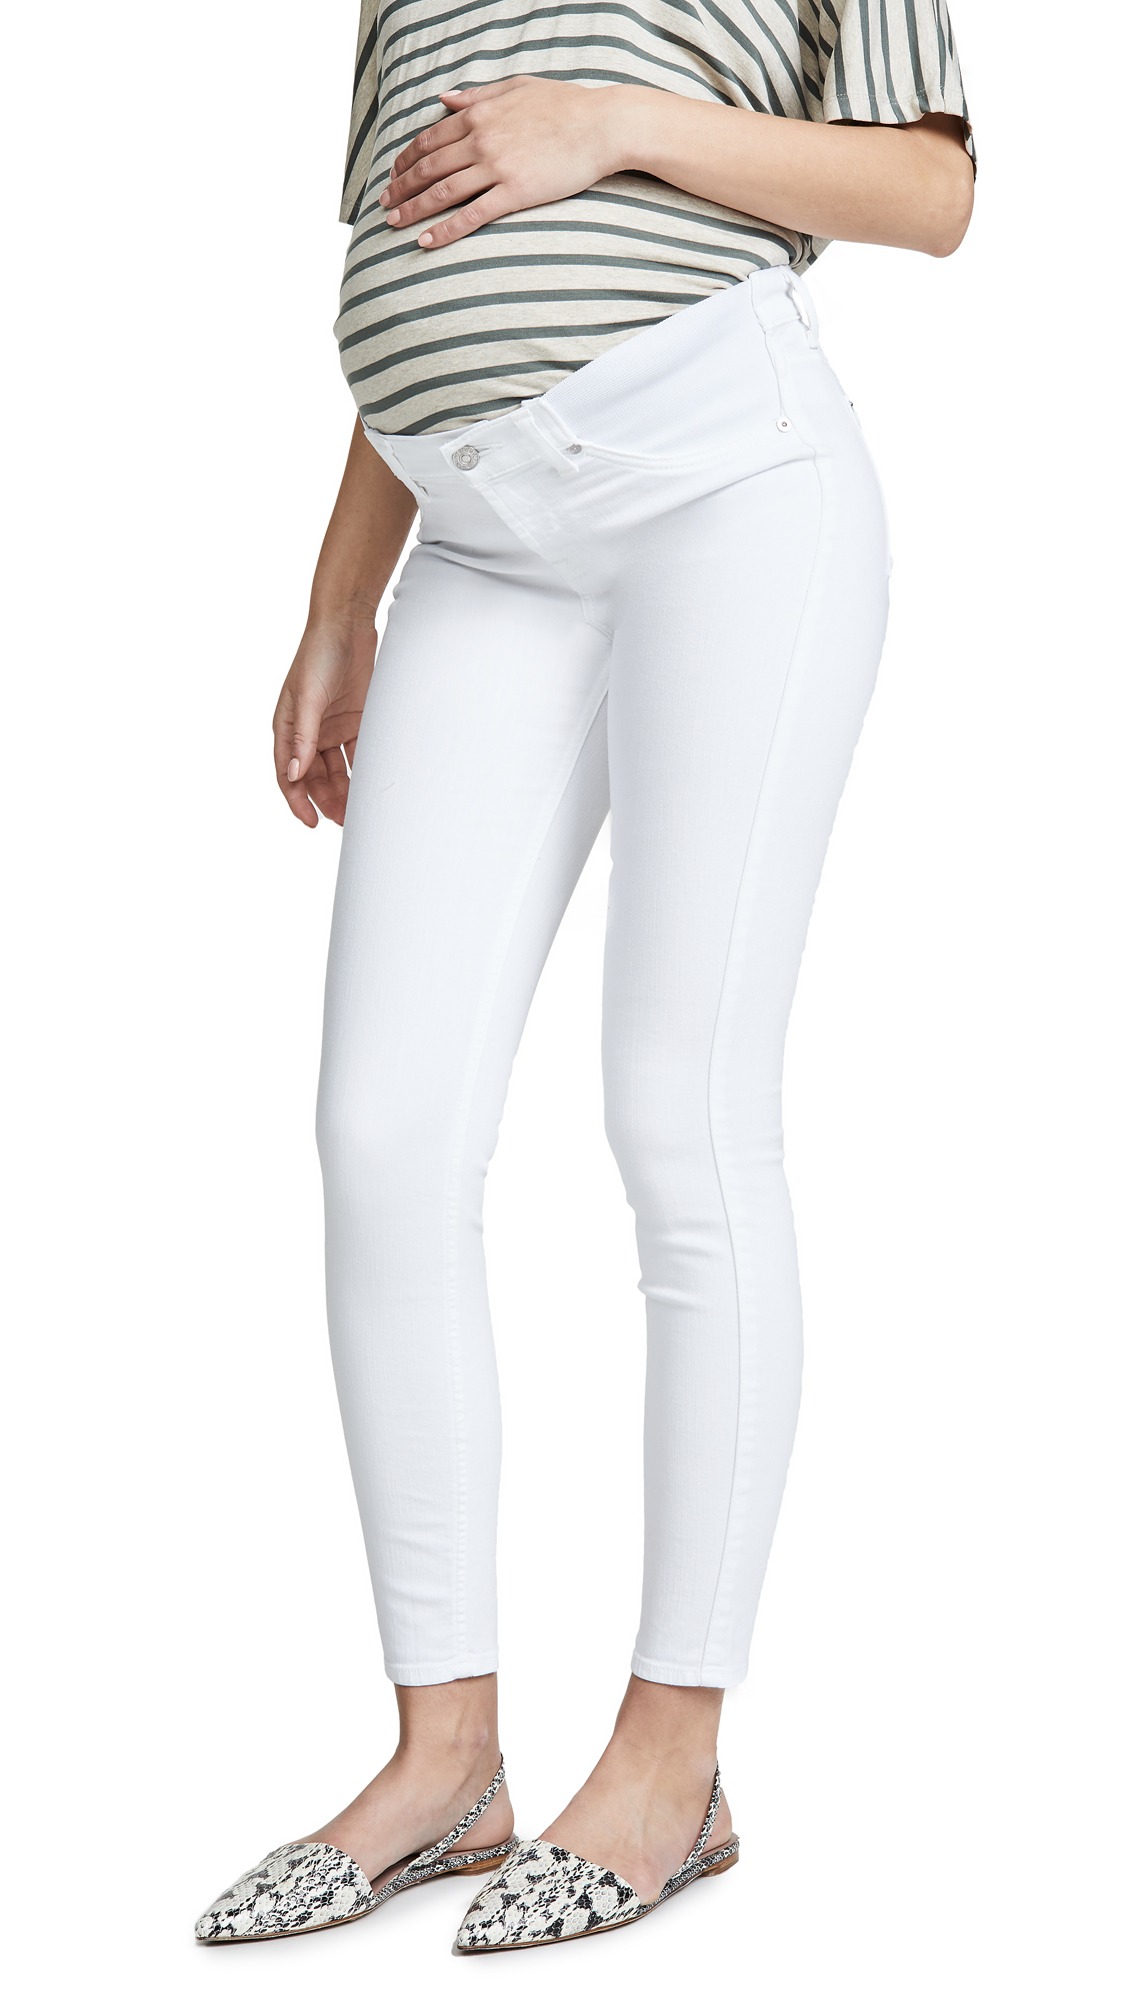 7 For All Mankind Ankle Skinny Maternity Jeans with Faux Front Pockets - Clean White